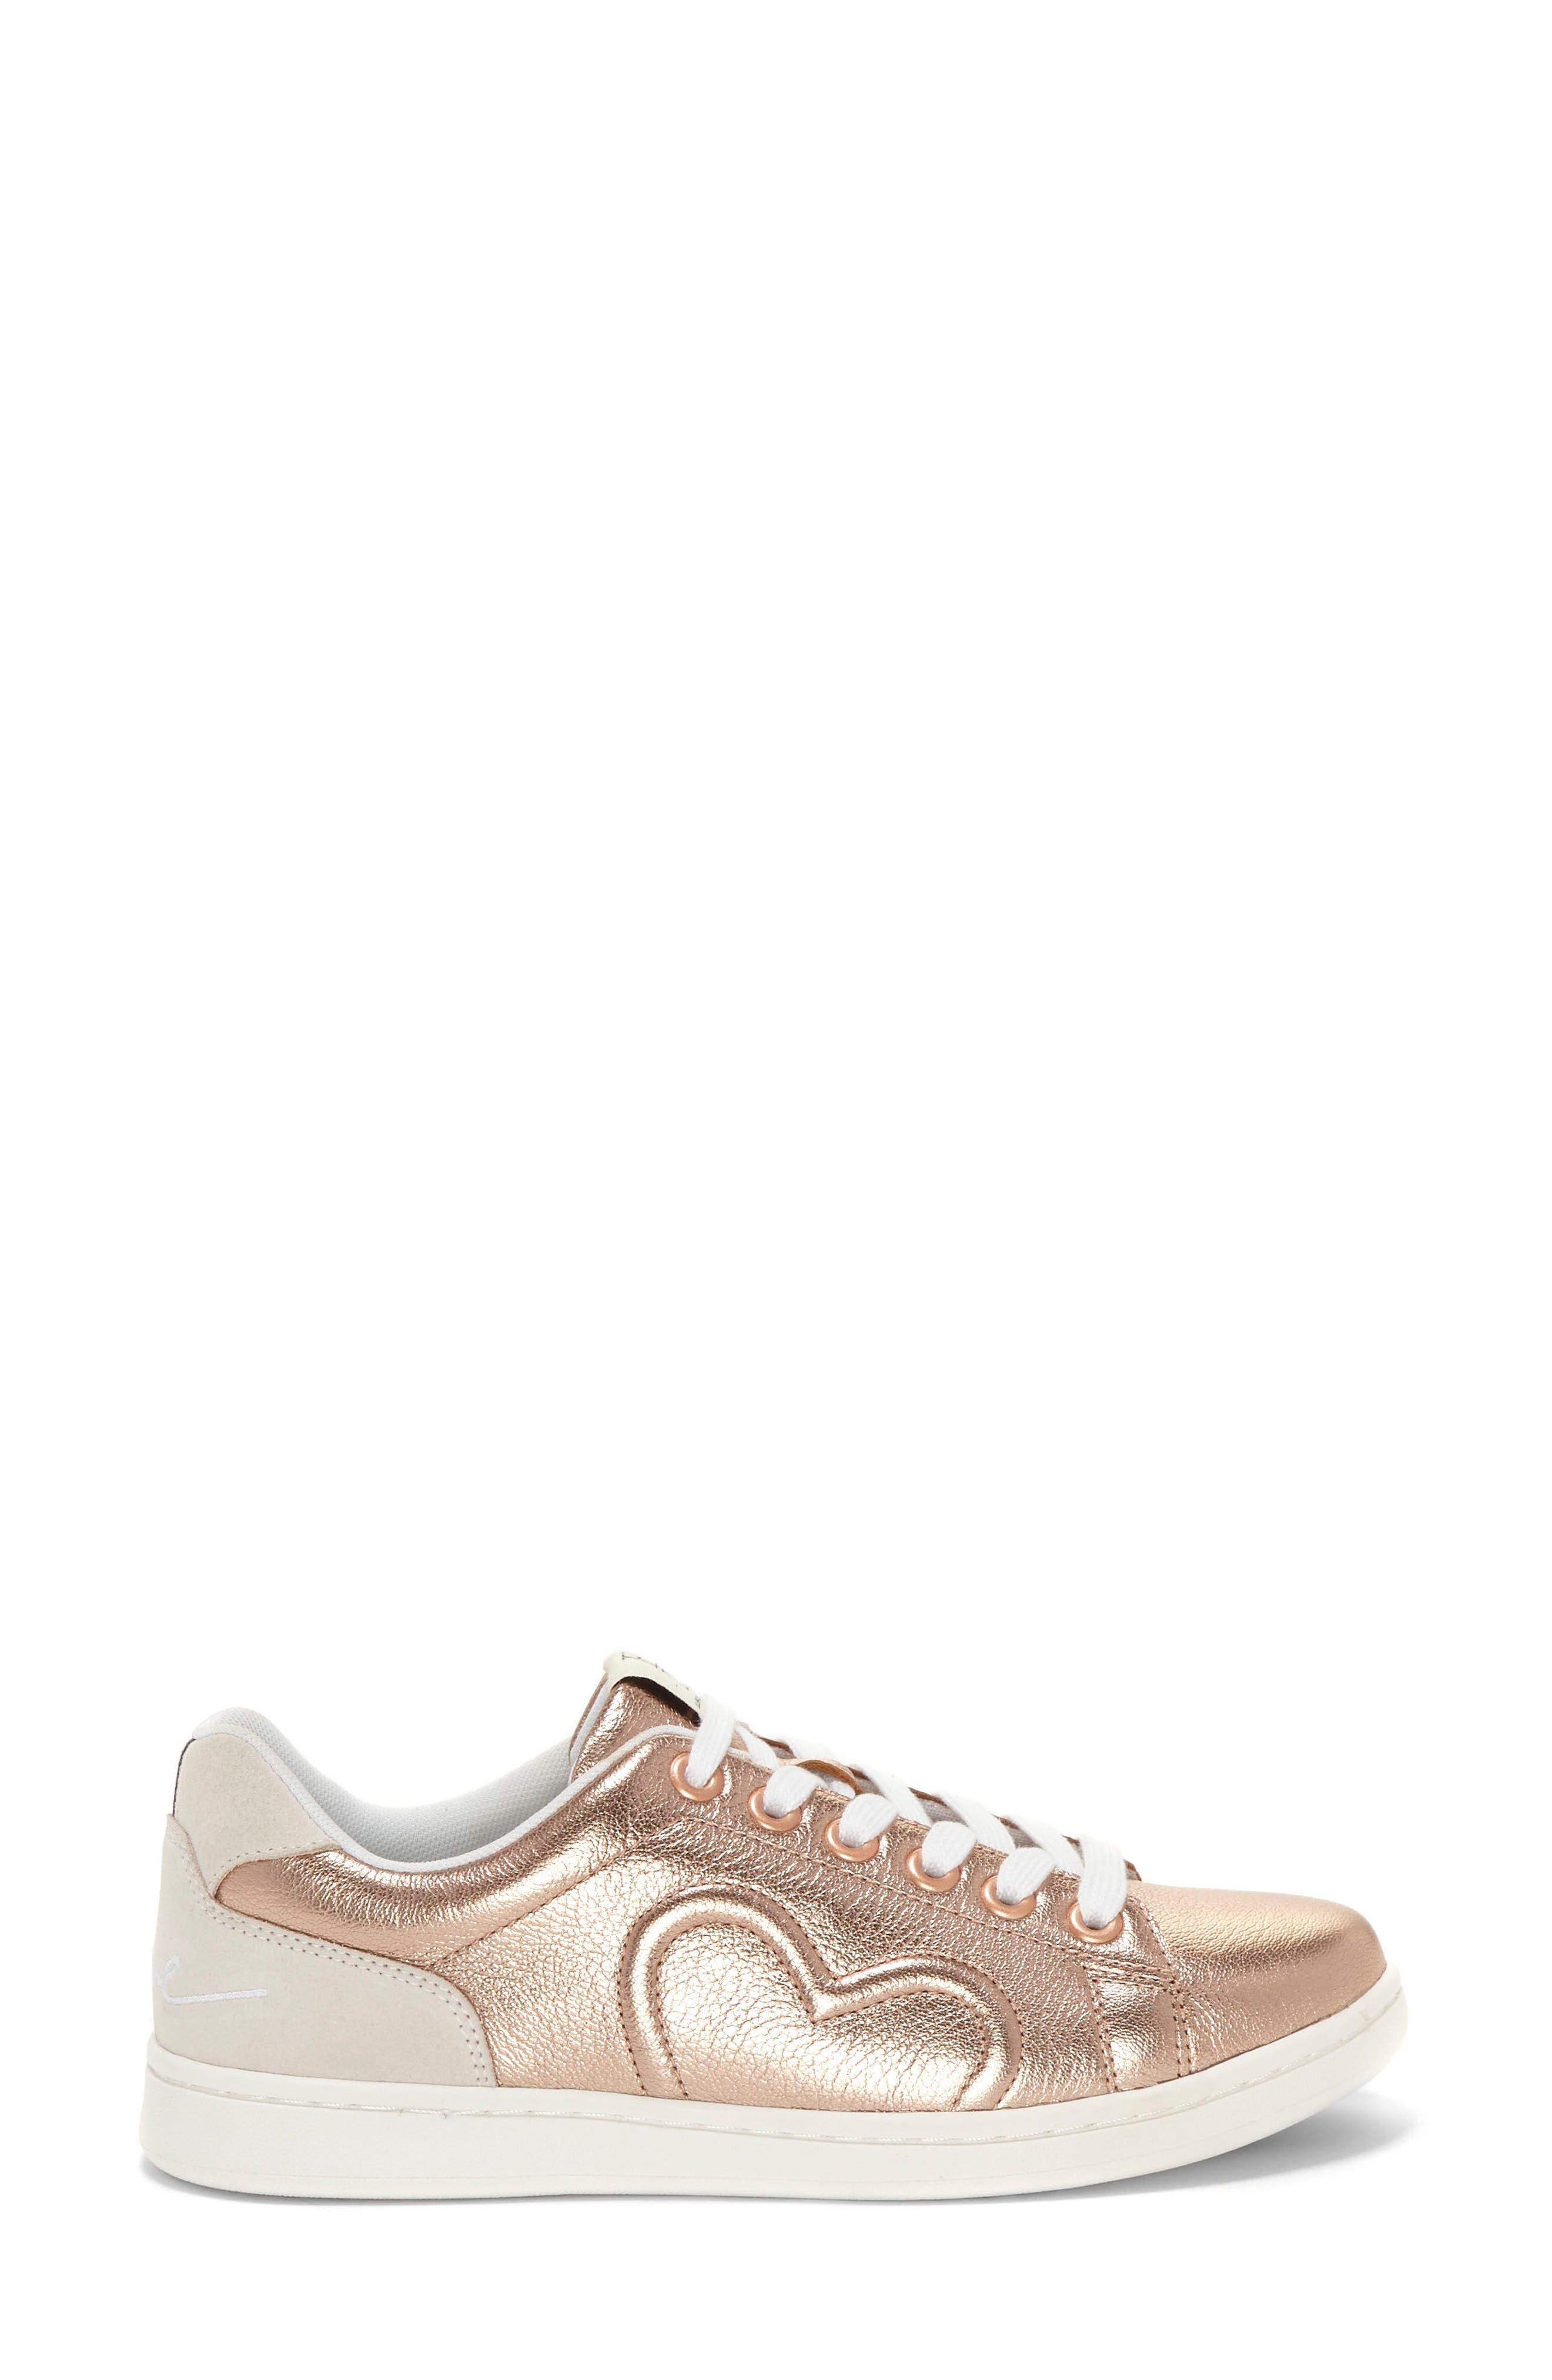 Chapunto Sneaker,                             Alternate thumbnail 4, color,                             Rose Gold Leather